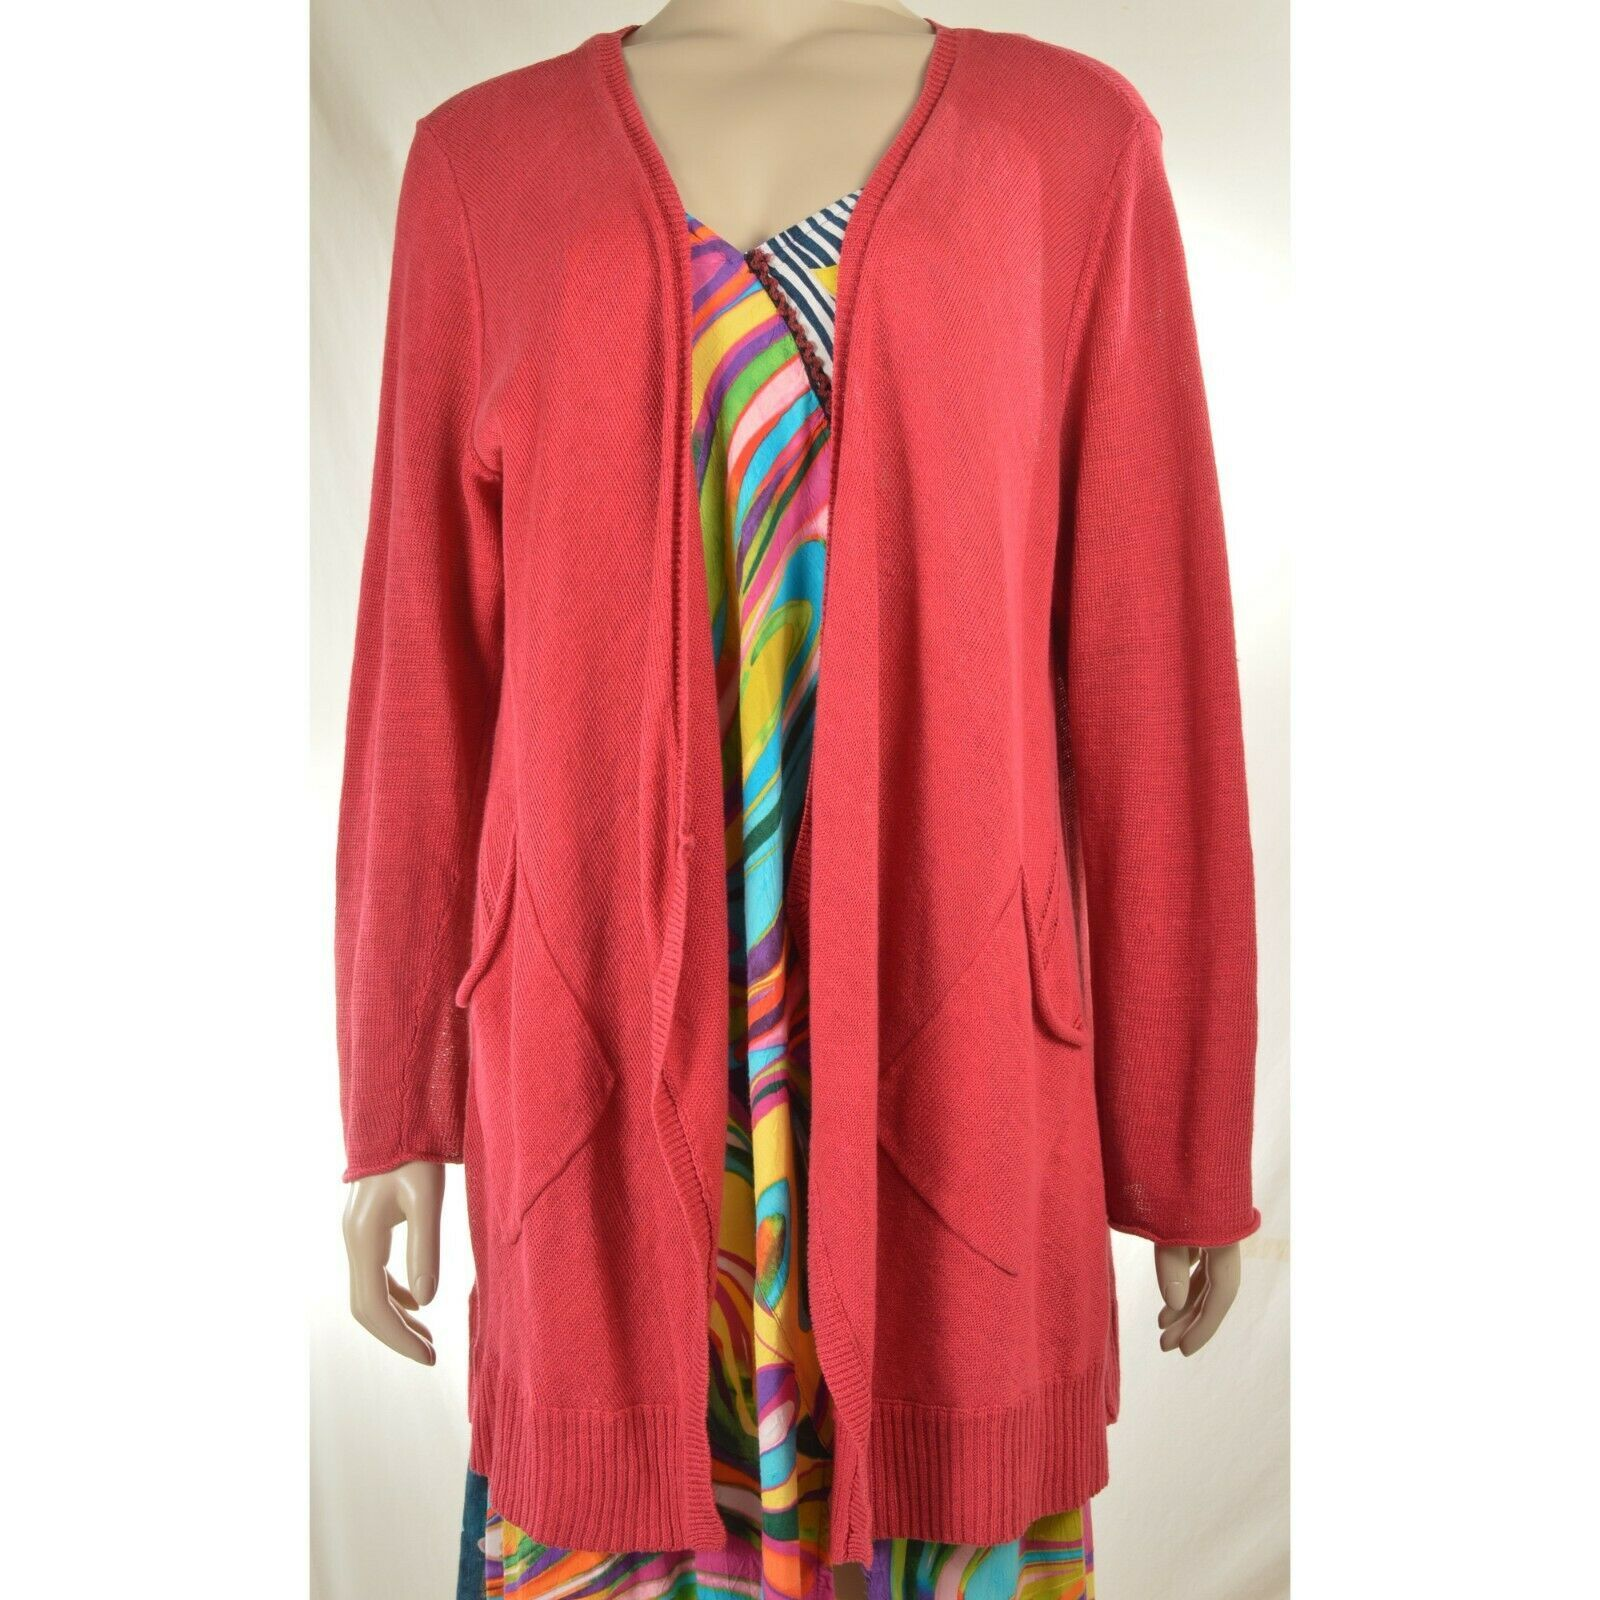 Eileen Fisher sweater cardigan SZ L soft red 100% linen knit pockets soft long s image 12